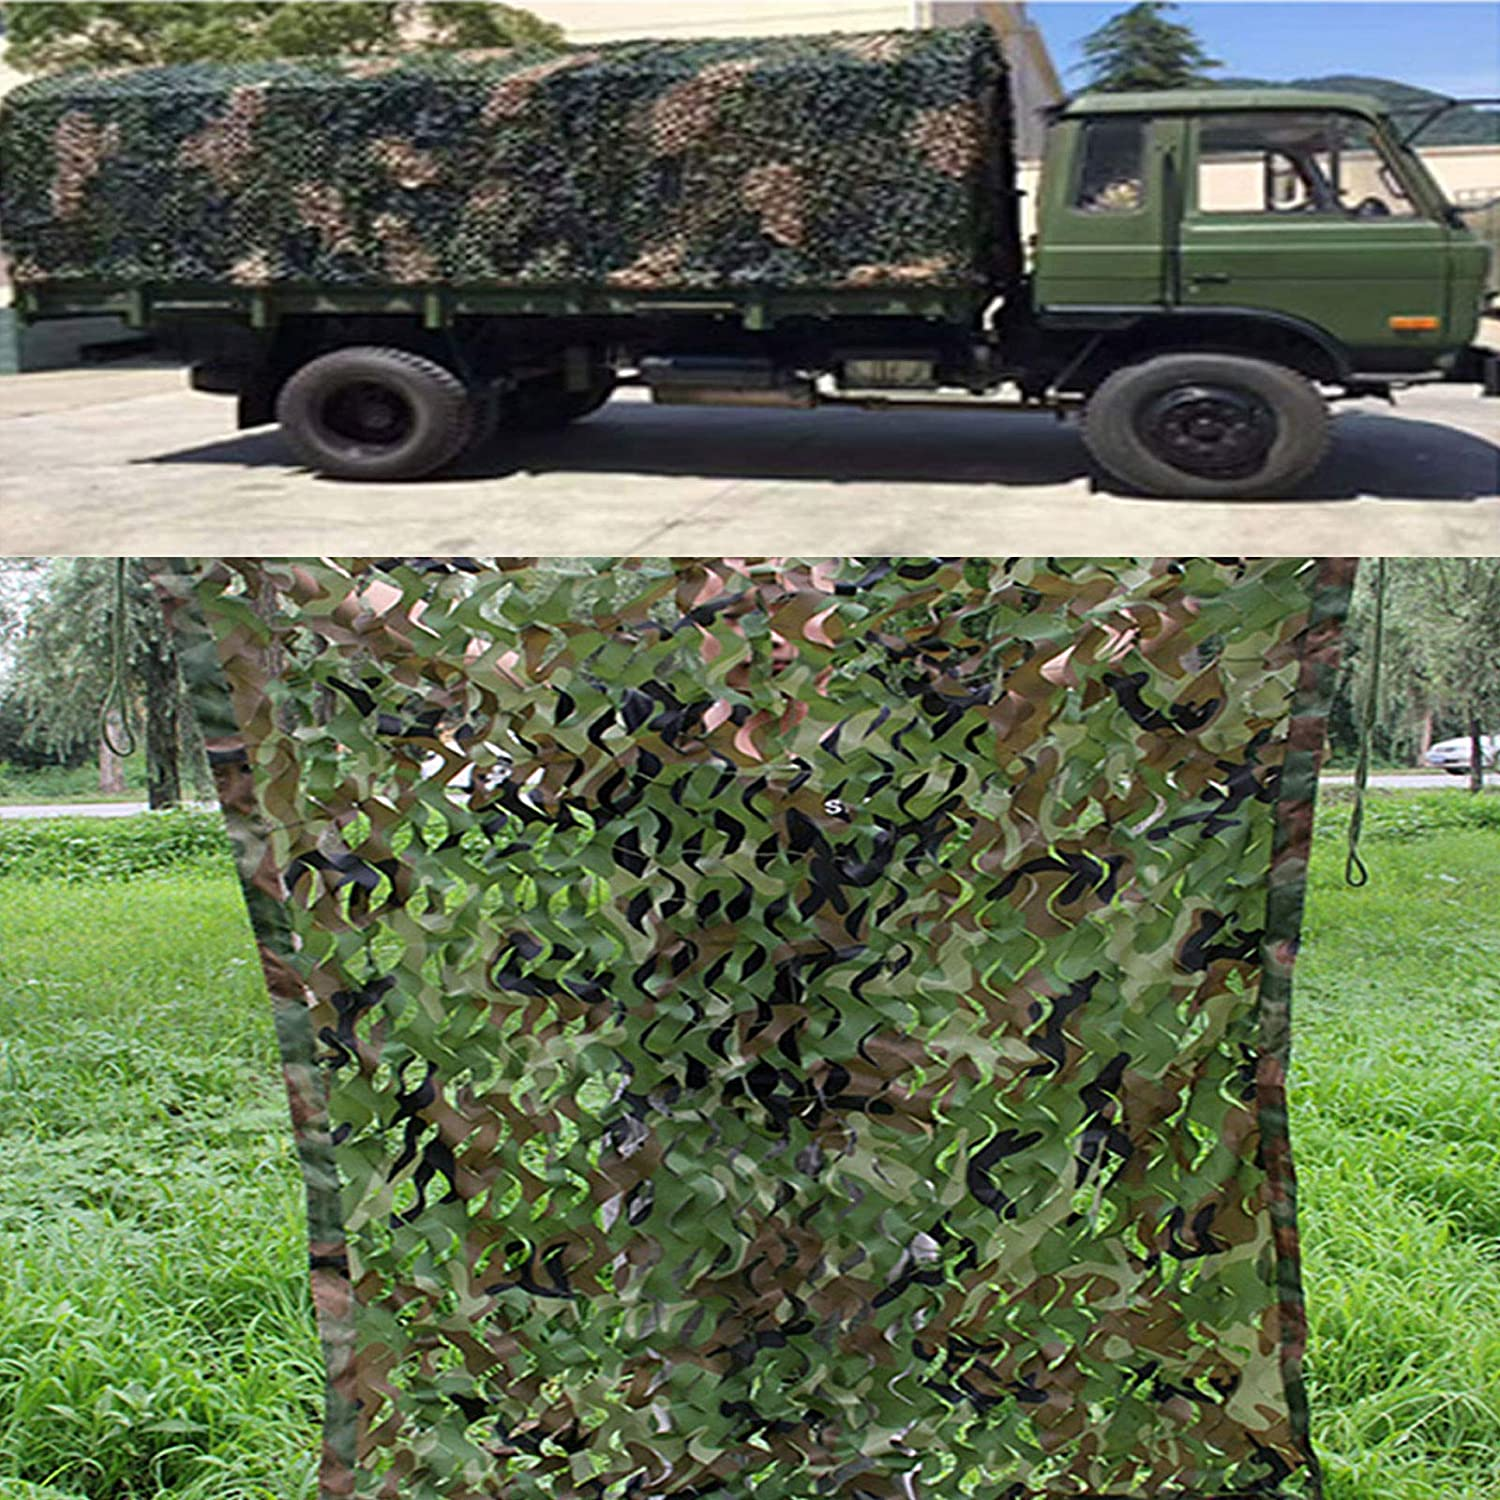 XYNH Camouflage Netting,Camo Netting Woodland Camouflage Net,Sun Shade Sail, Camping, Shooting, Hunting, Decoration,Awning for Outdoor,Canopy Sail